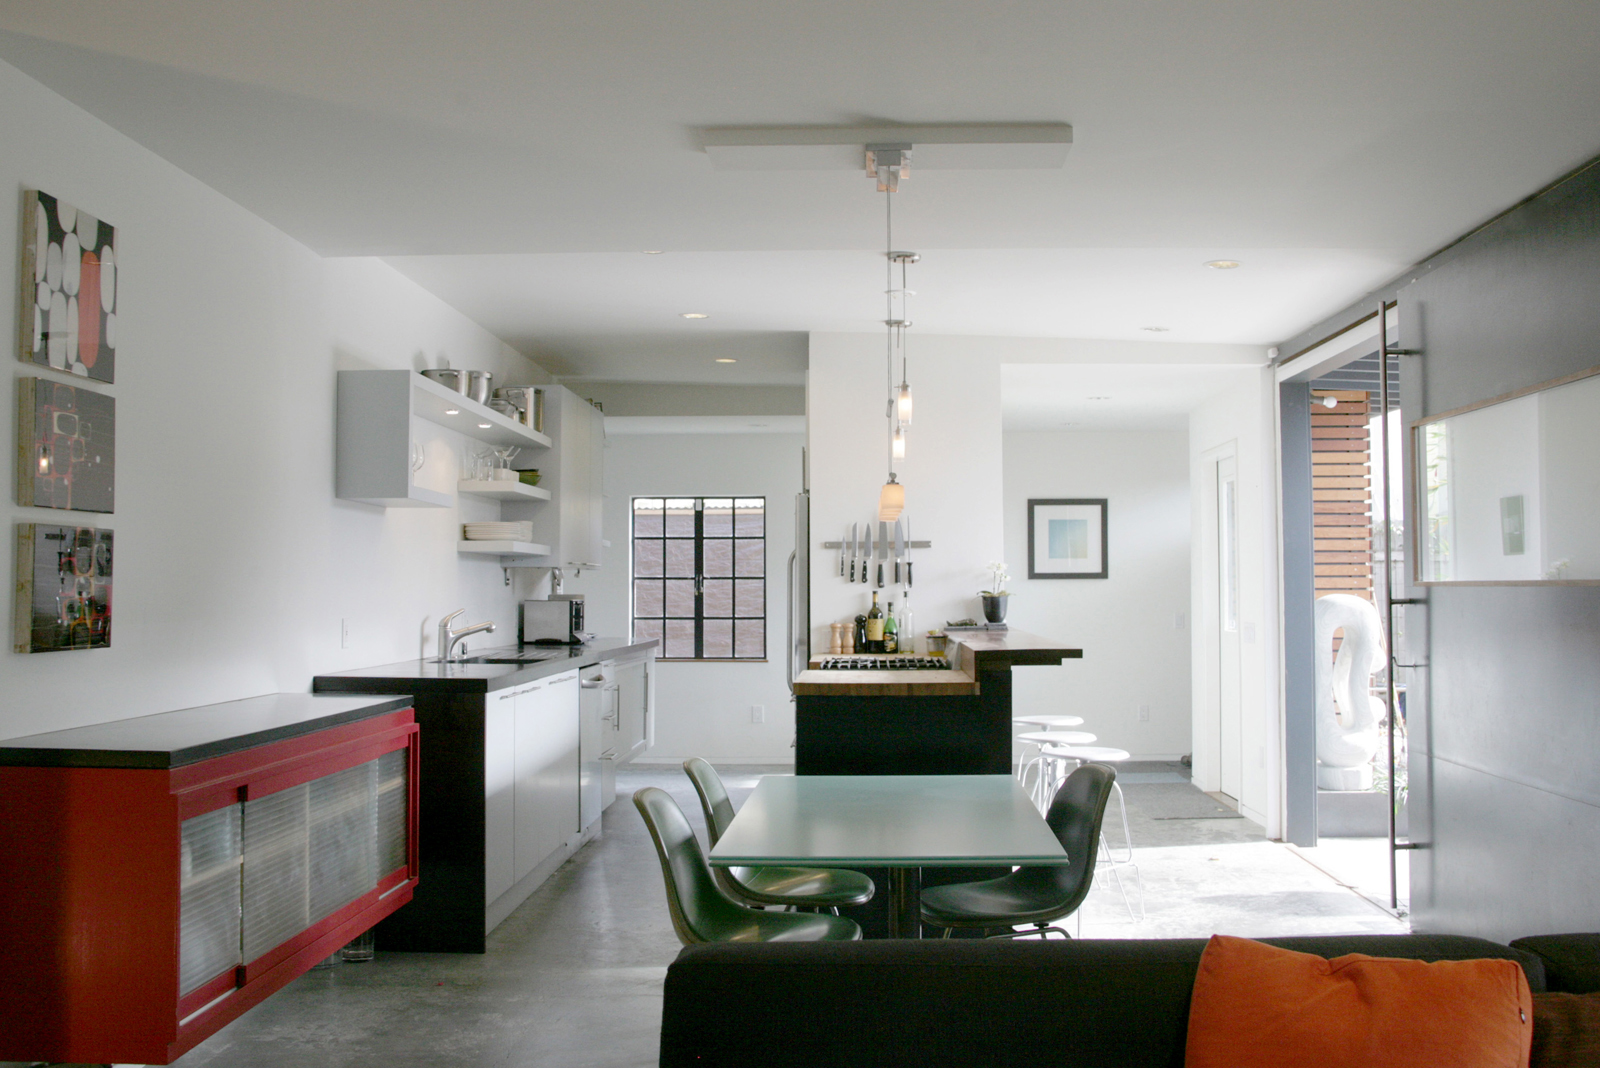 "In the kitchen and dining area, Shoup used ipe wood and installed an energy-efficient hydronic radiant heating system in the concrete floor. ""There's a minimalism that drives the basic design gestures,"" notes Shoup. ""I tried to temper that with a compleme"